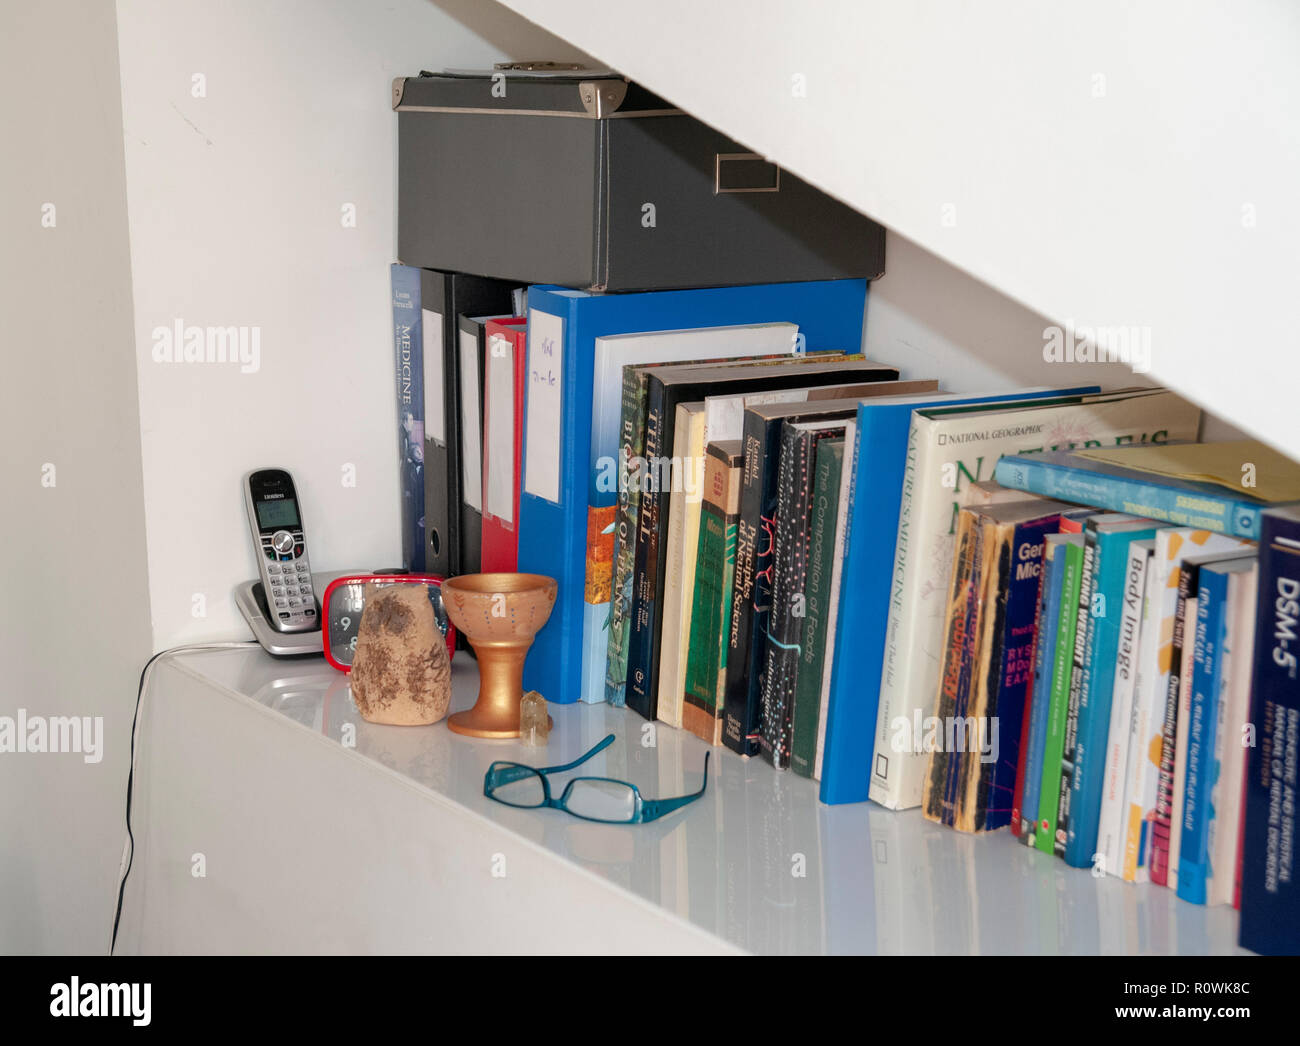 Bookshelf in a medical professional's consulting room - Stock Image